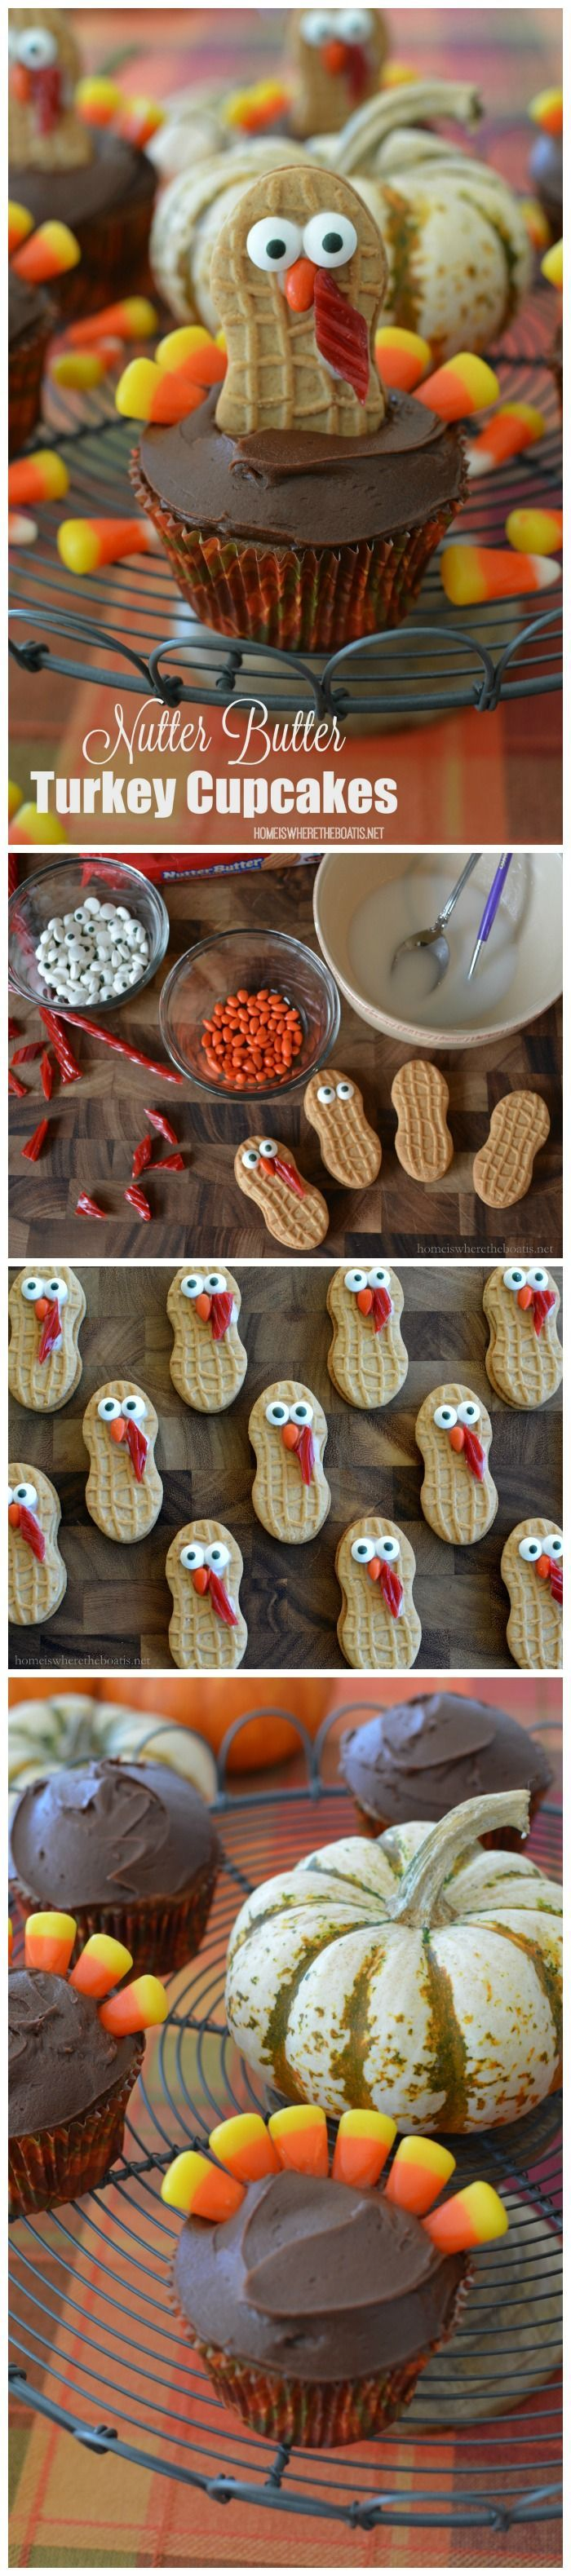 Won't these make adorable Thanksgiving desserts! Nutter Butter Turkey Cupcakes, as fun to make as they are to eat.